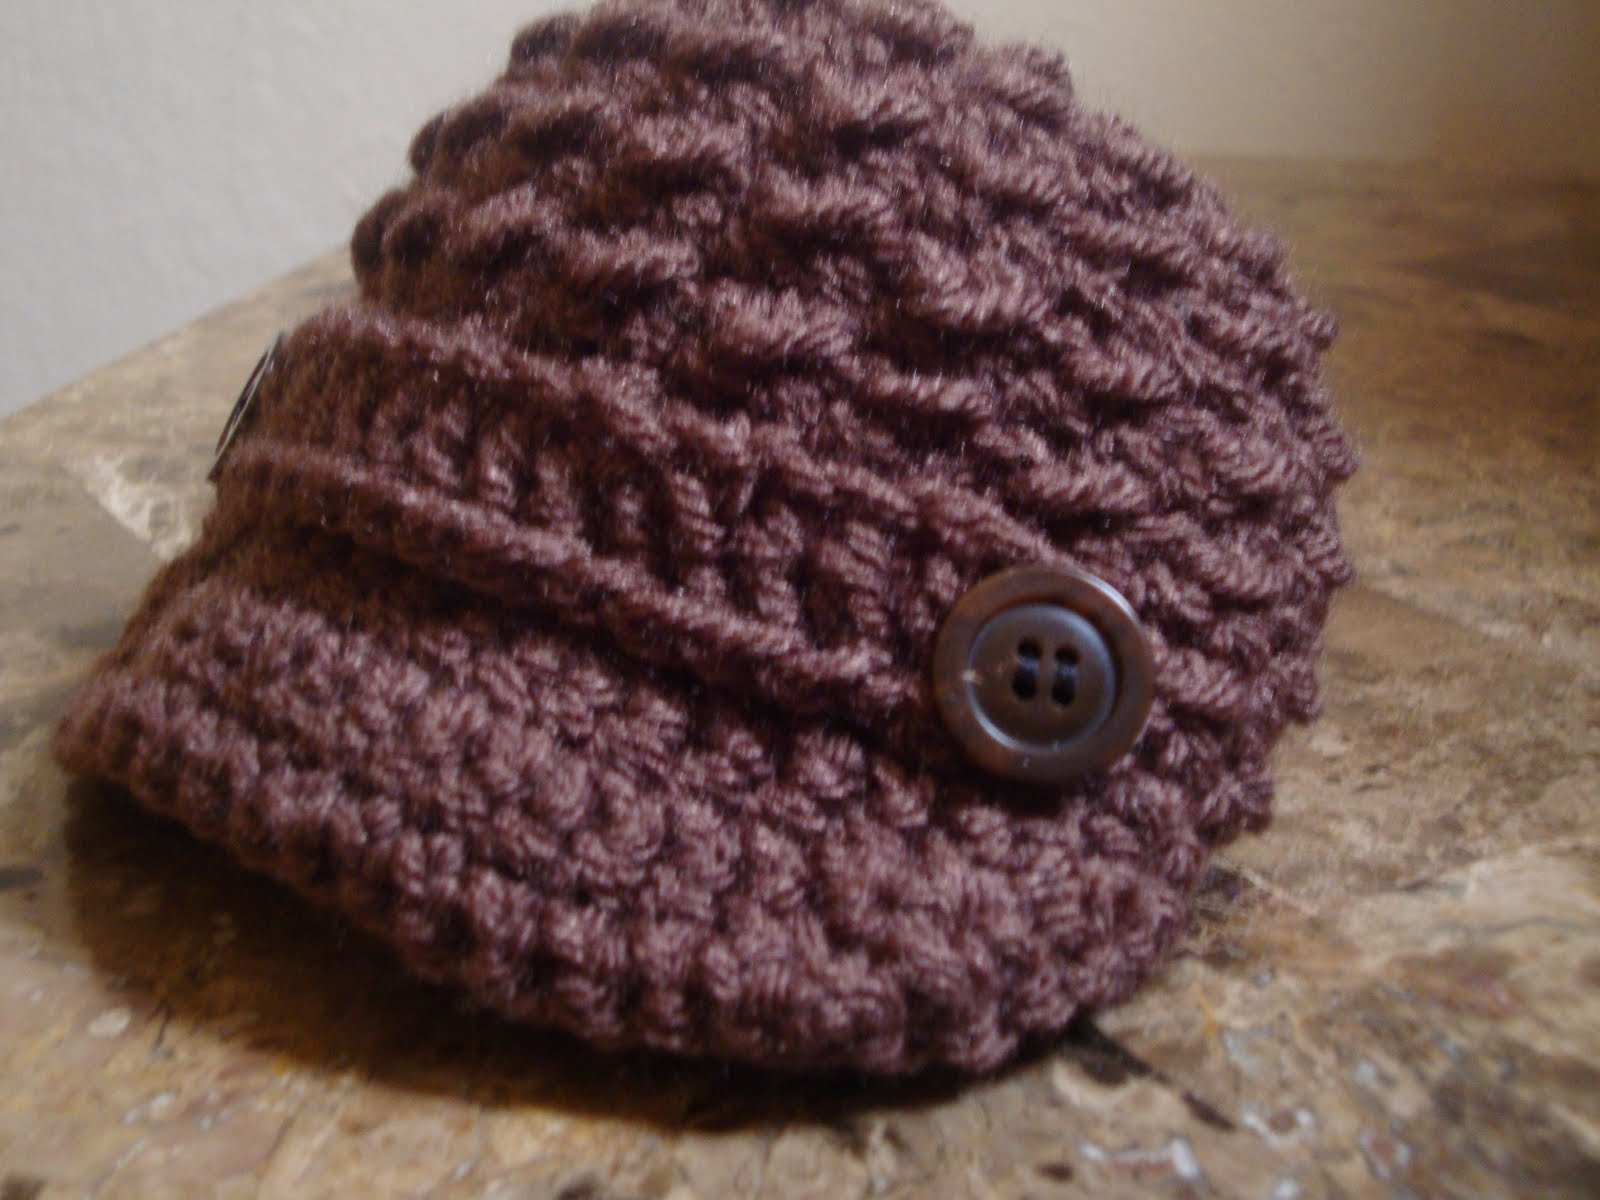 Free Crochet Pattern Newsboy Style Cap : FREE CROCHET PATTERN/NEWSBOY CAP - Crochet and Knitting ...